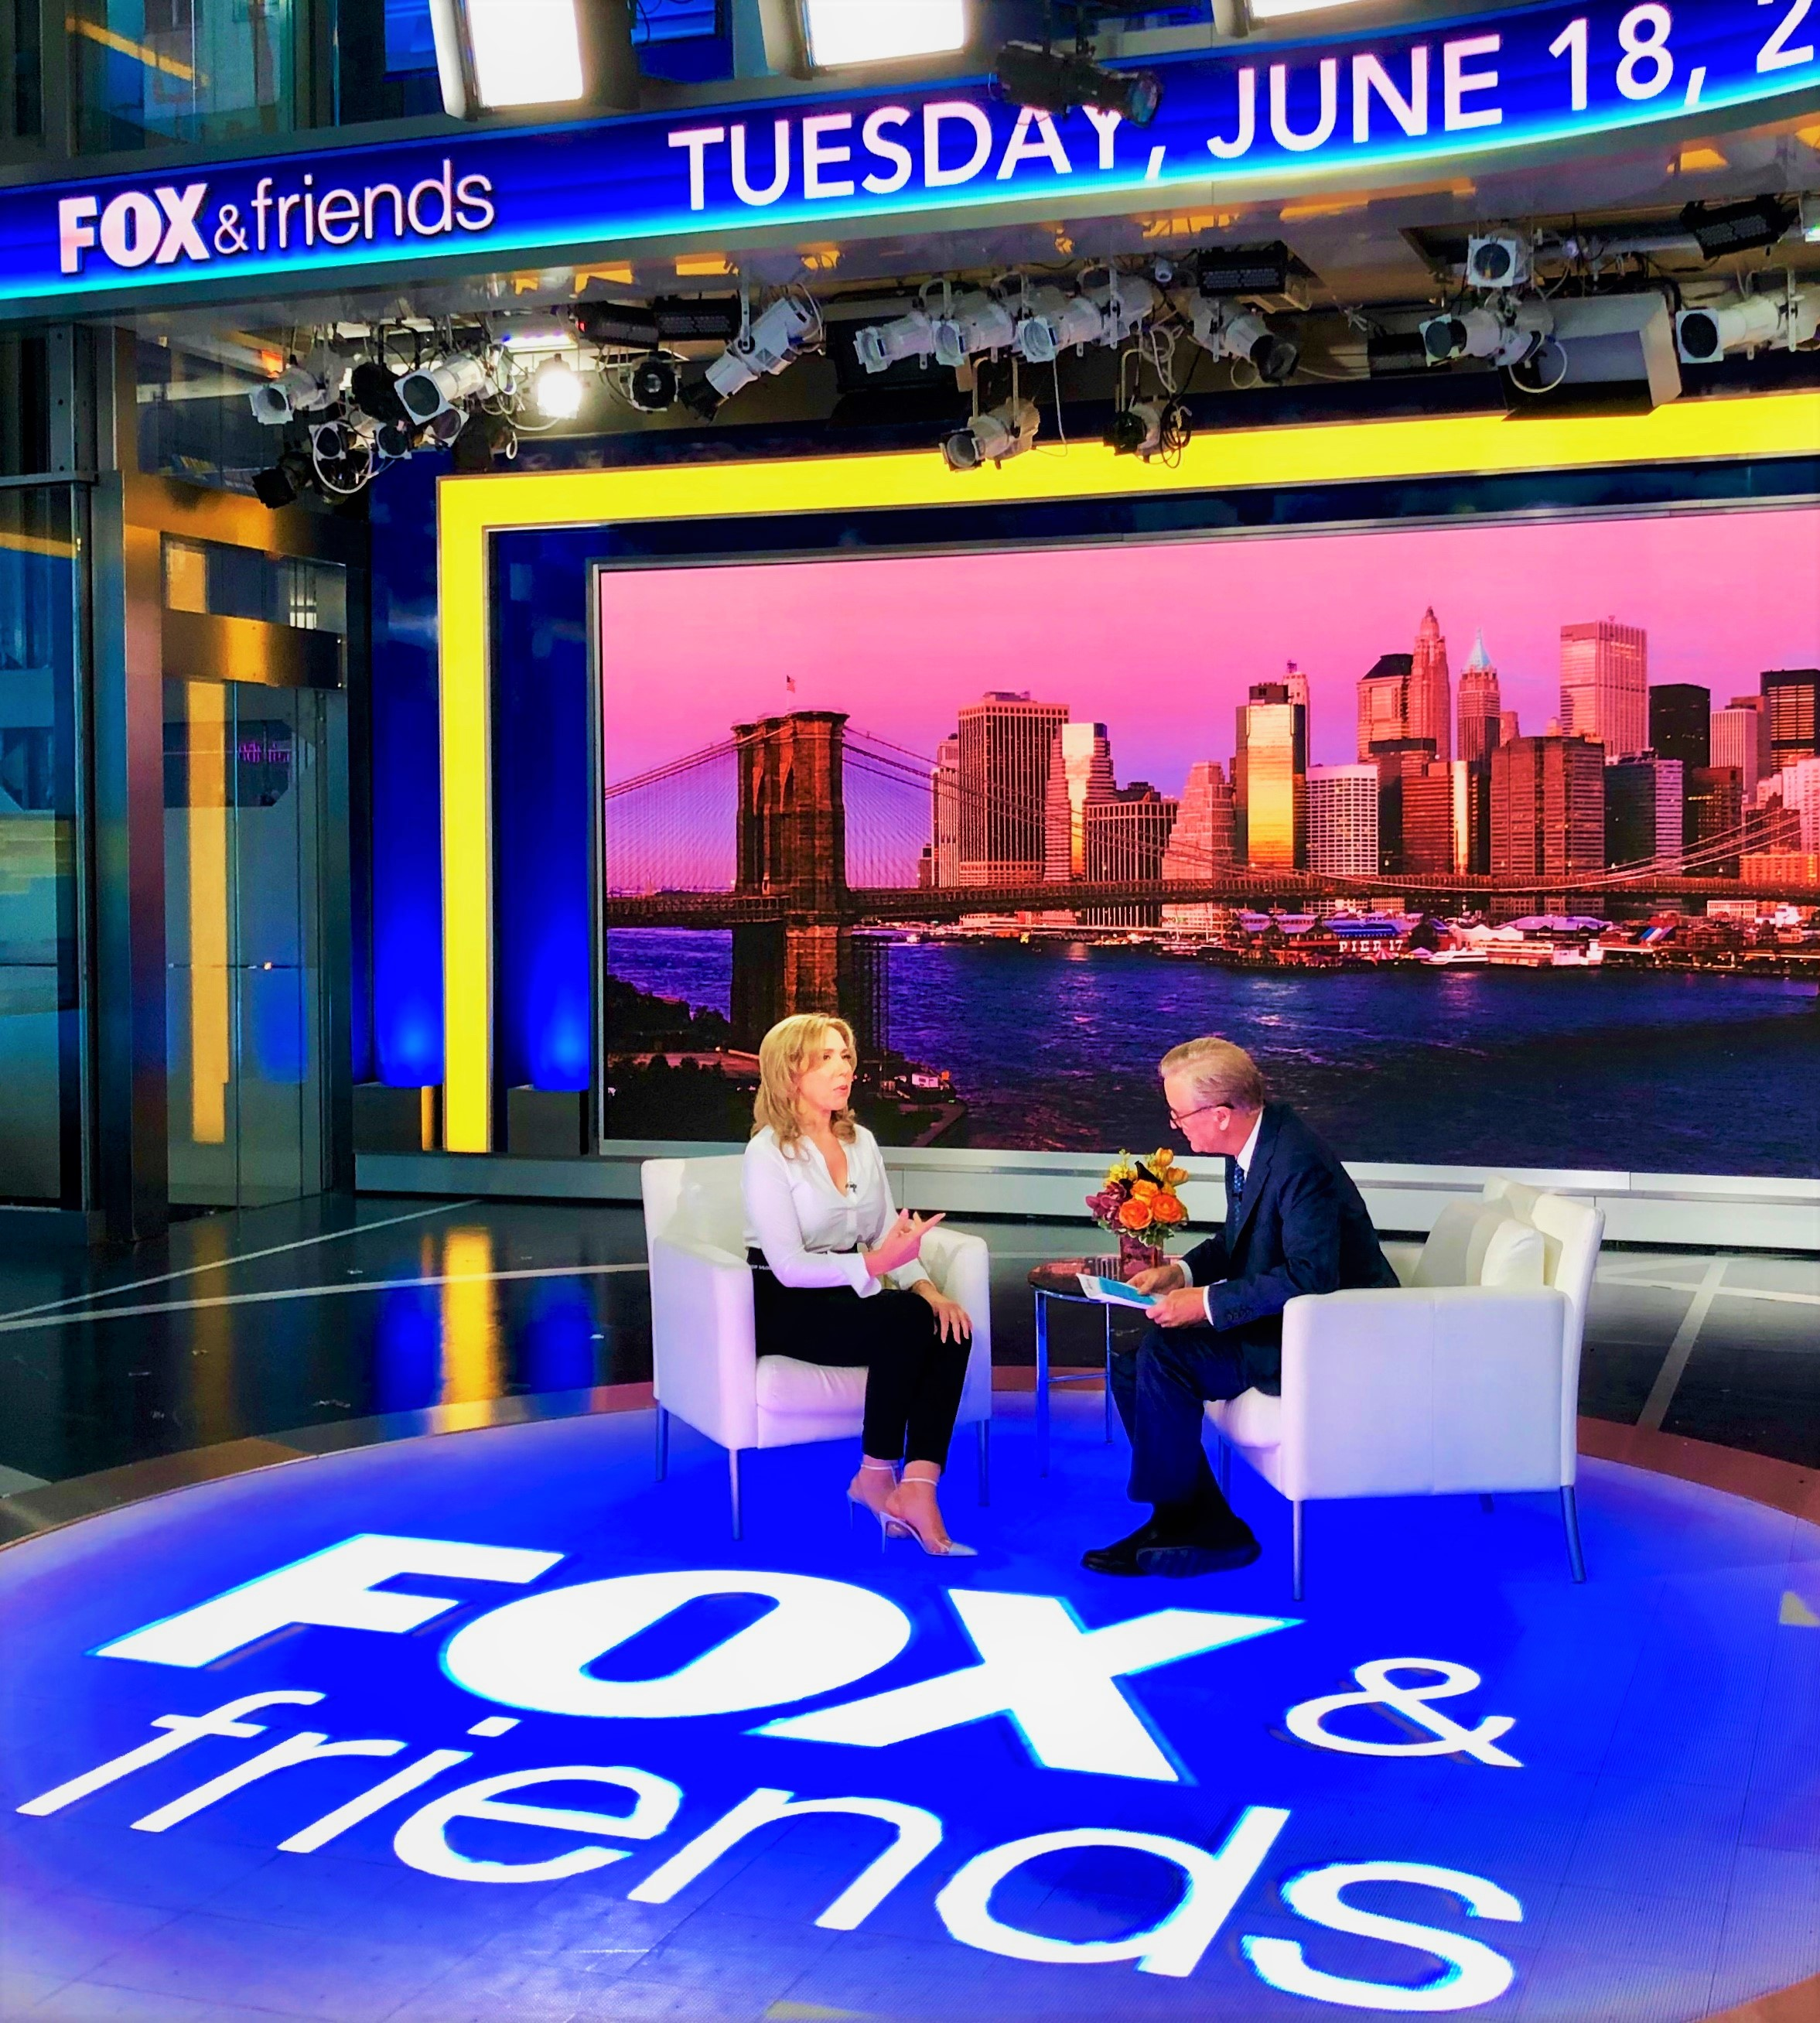 Fox & Friends Evi Kokalari-Angelakis Sits Down with Steve Doocy